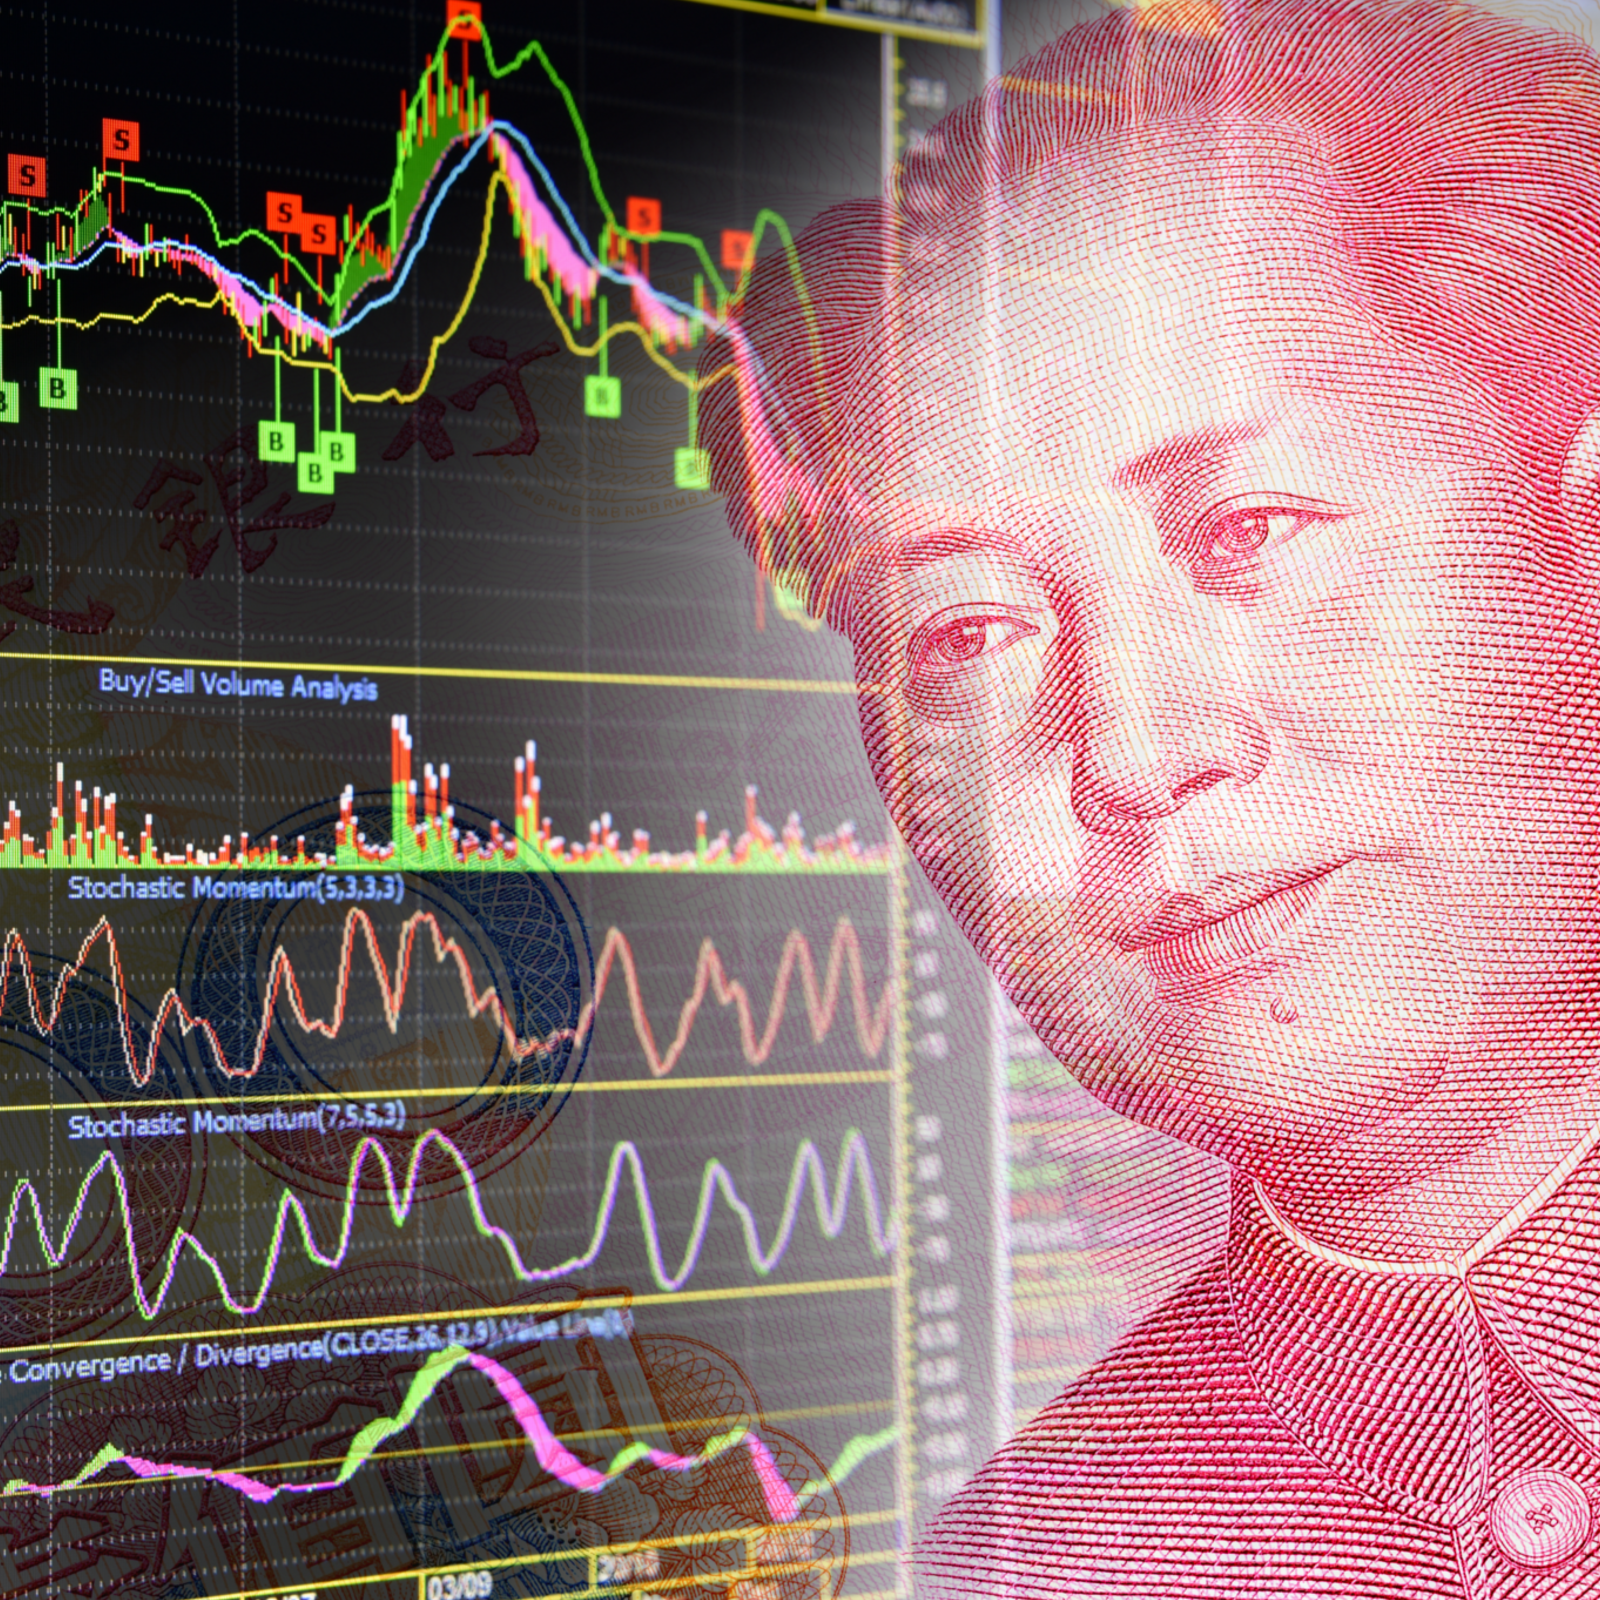 China Monitors Booming OTC 💰💰💰 Bitcoin Market After Shutting Down Exchanges After shutting down the country's bitcoin exchanges, the Chinese government is monitoring the booming cryptocurrency over-the-counter (OTC) market. A recent government report shows that 680 million yuan, approximately $103 million 💰💰💰Join our community of like minded individuals 💰💰💰 http://bit.ly/2zapDrk?utm_content=bufferf1c70&utm_medium=social&utm_source=pinterest.com&utm_campaign=buffer  #bitcoin…